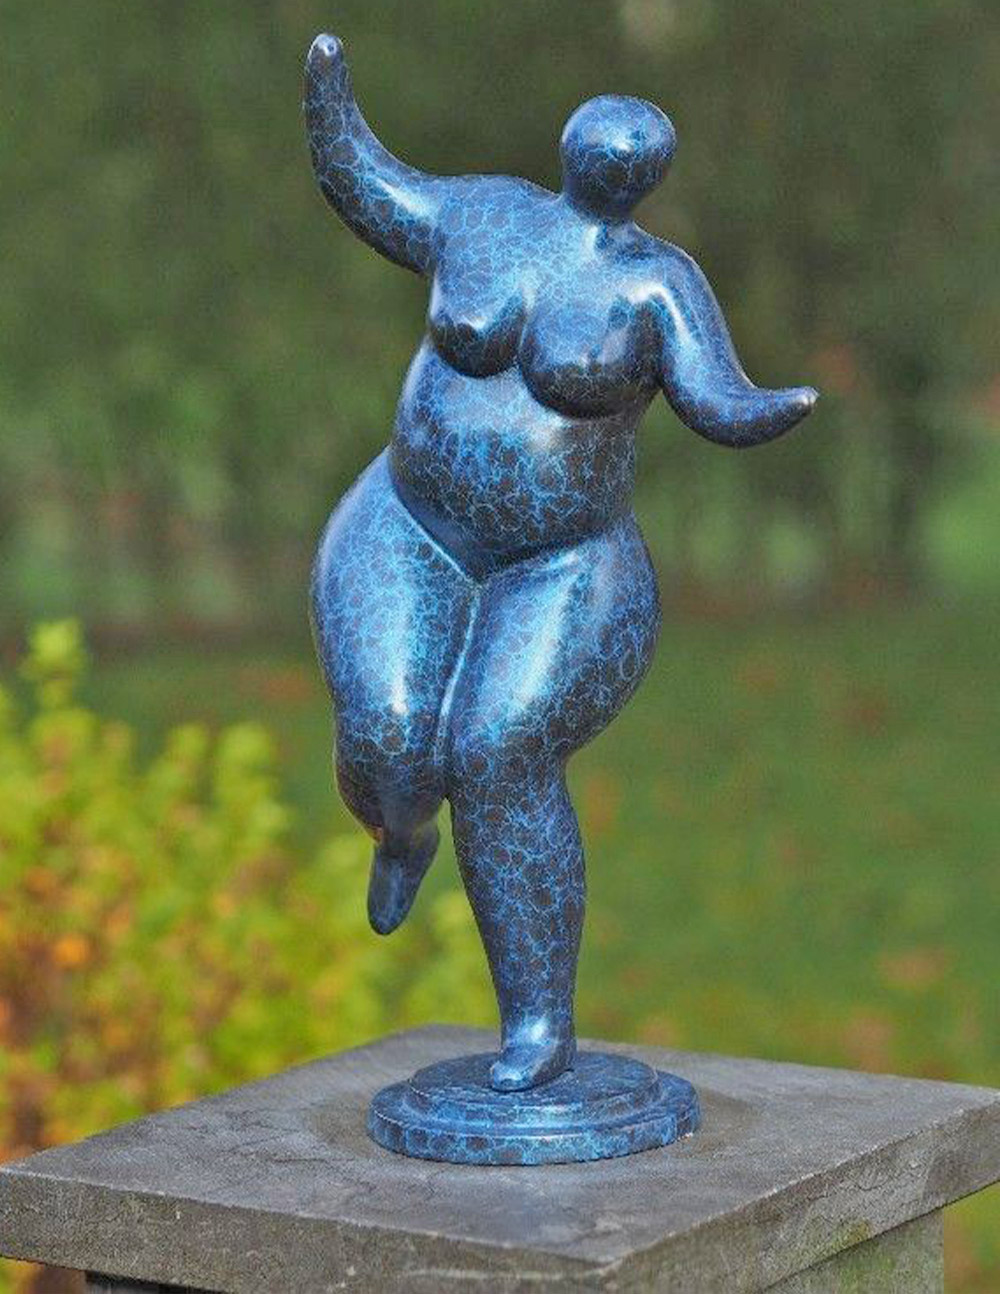 FIWO 47 Bronze Sculpture Nouveau Nude Lady Lets party 37cm | Avant Garden Guernsey